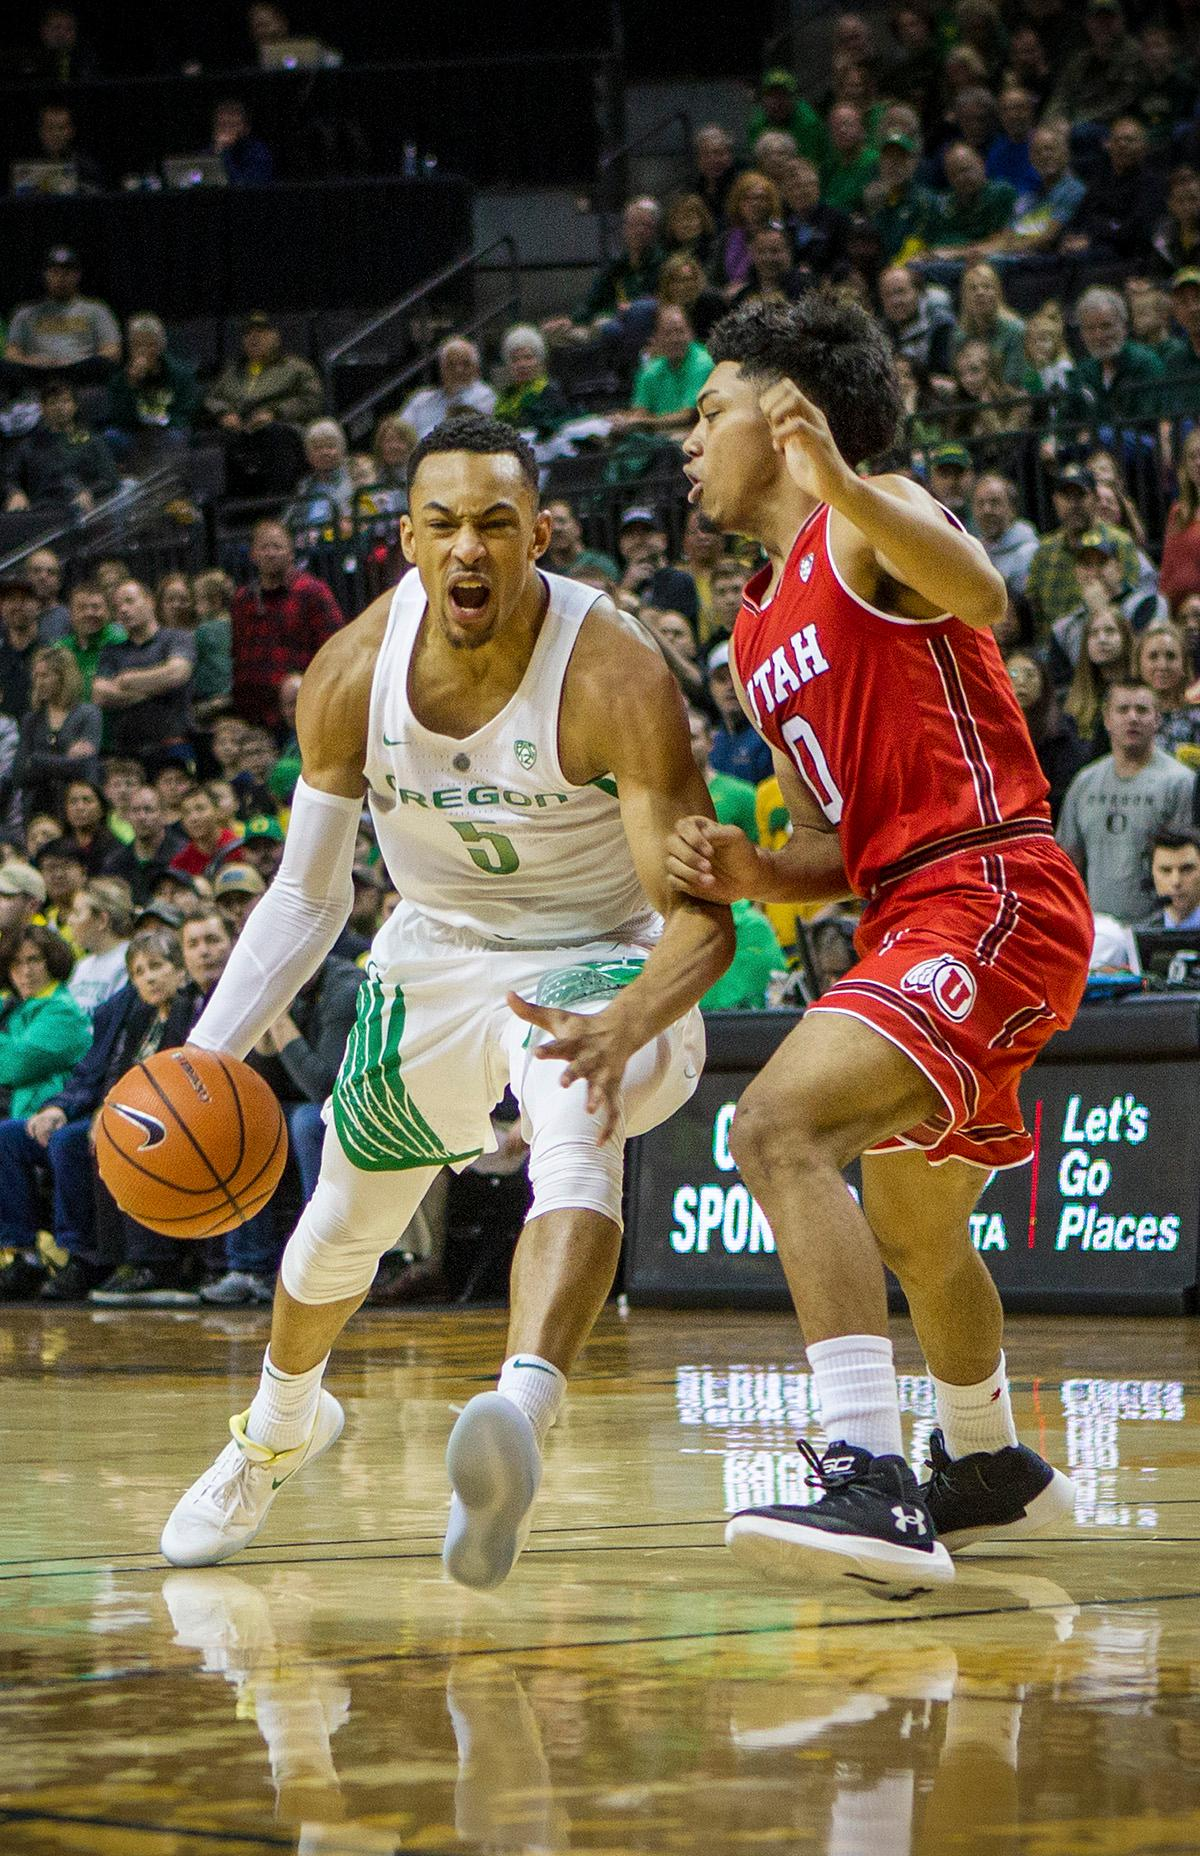 Oregon Ducks Elijah Brown (#5) makes a play past Utah's defense. The Utah Utes defeated the Oregon Ducks 66-56 on Friday night at Matthew Knight Arena. This is the first Pac-12 conference game loss at home for the Ducks since January of 2015. This also ended the five home game winning streak for the Ducks against the Utah Utes. Photo by Rhianna Gelhart, Oregon News Lab